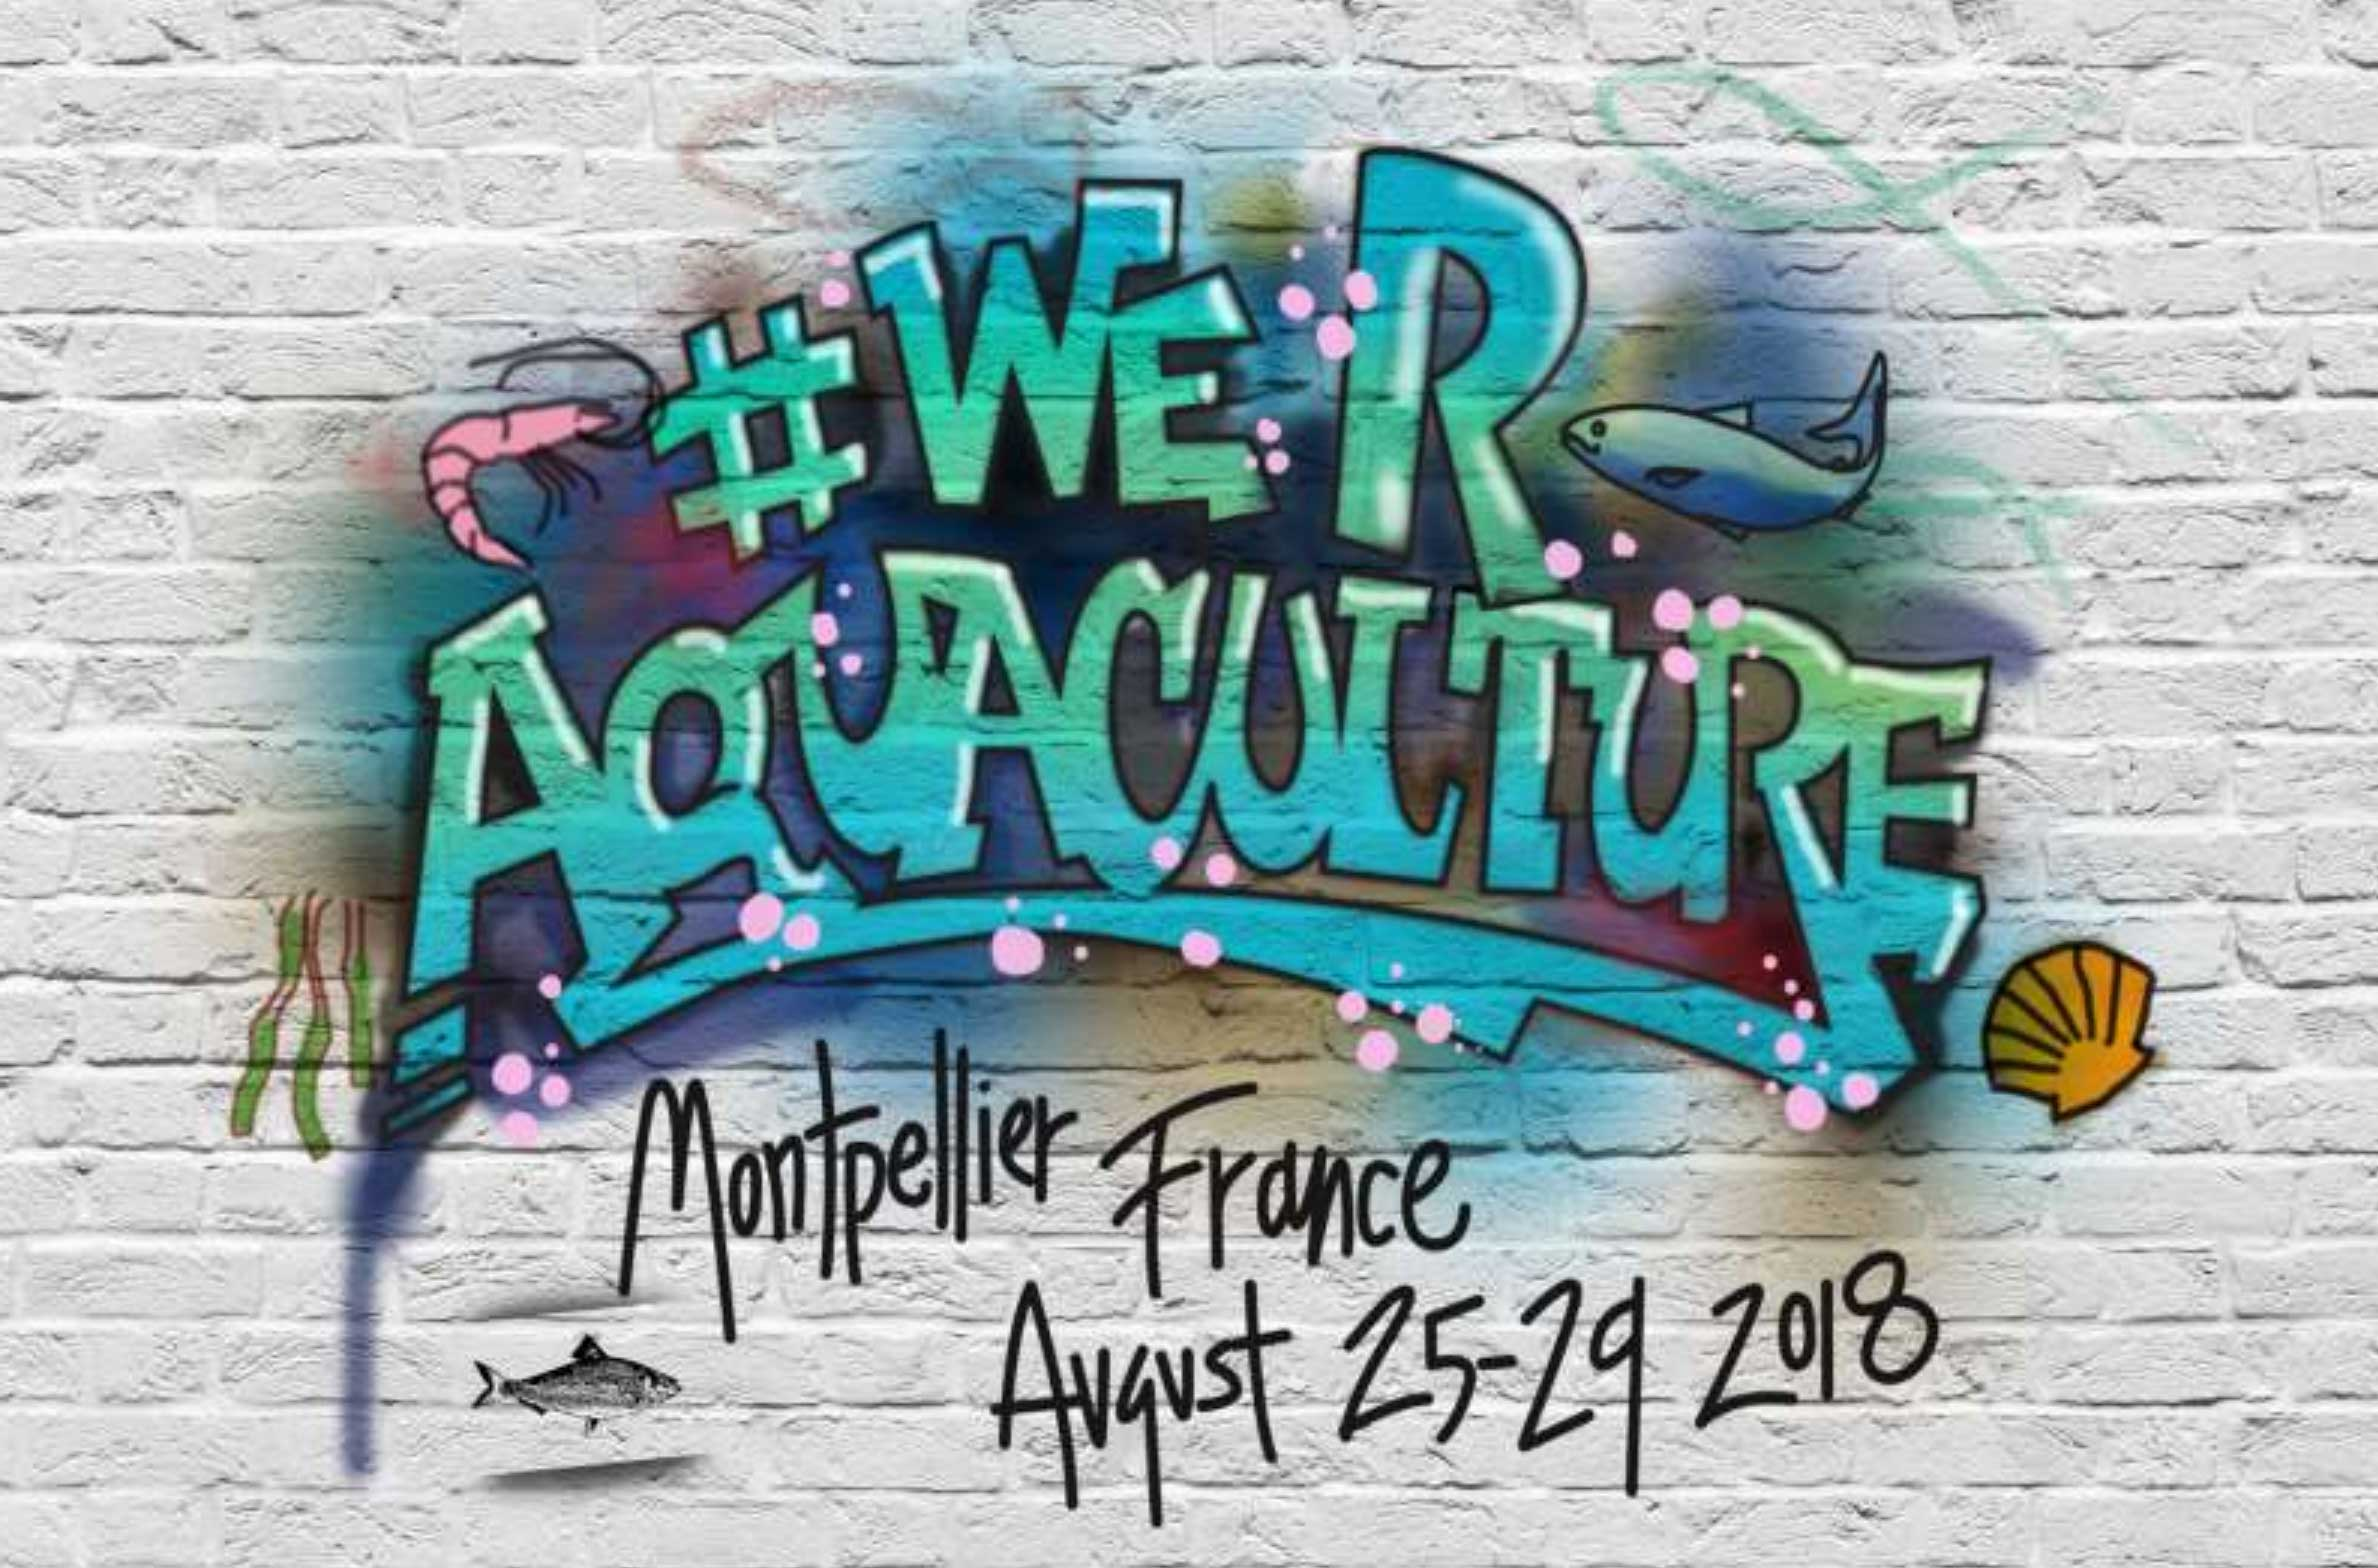 Arbiom participated to Aqua 2018 in Montpellier